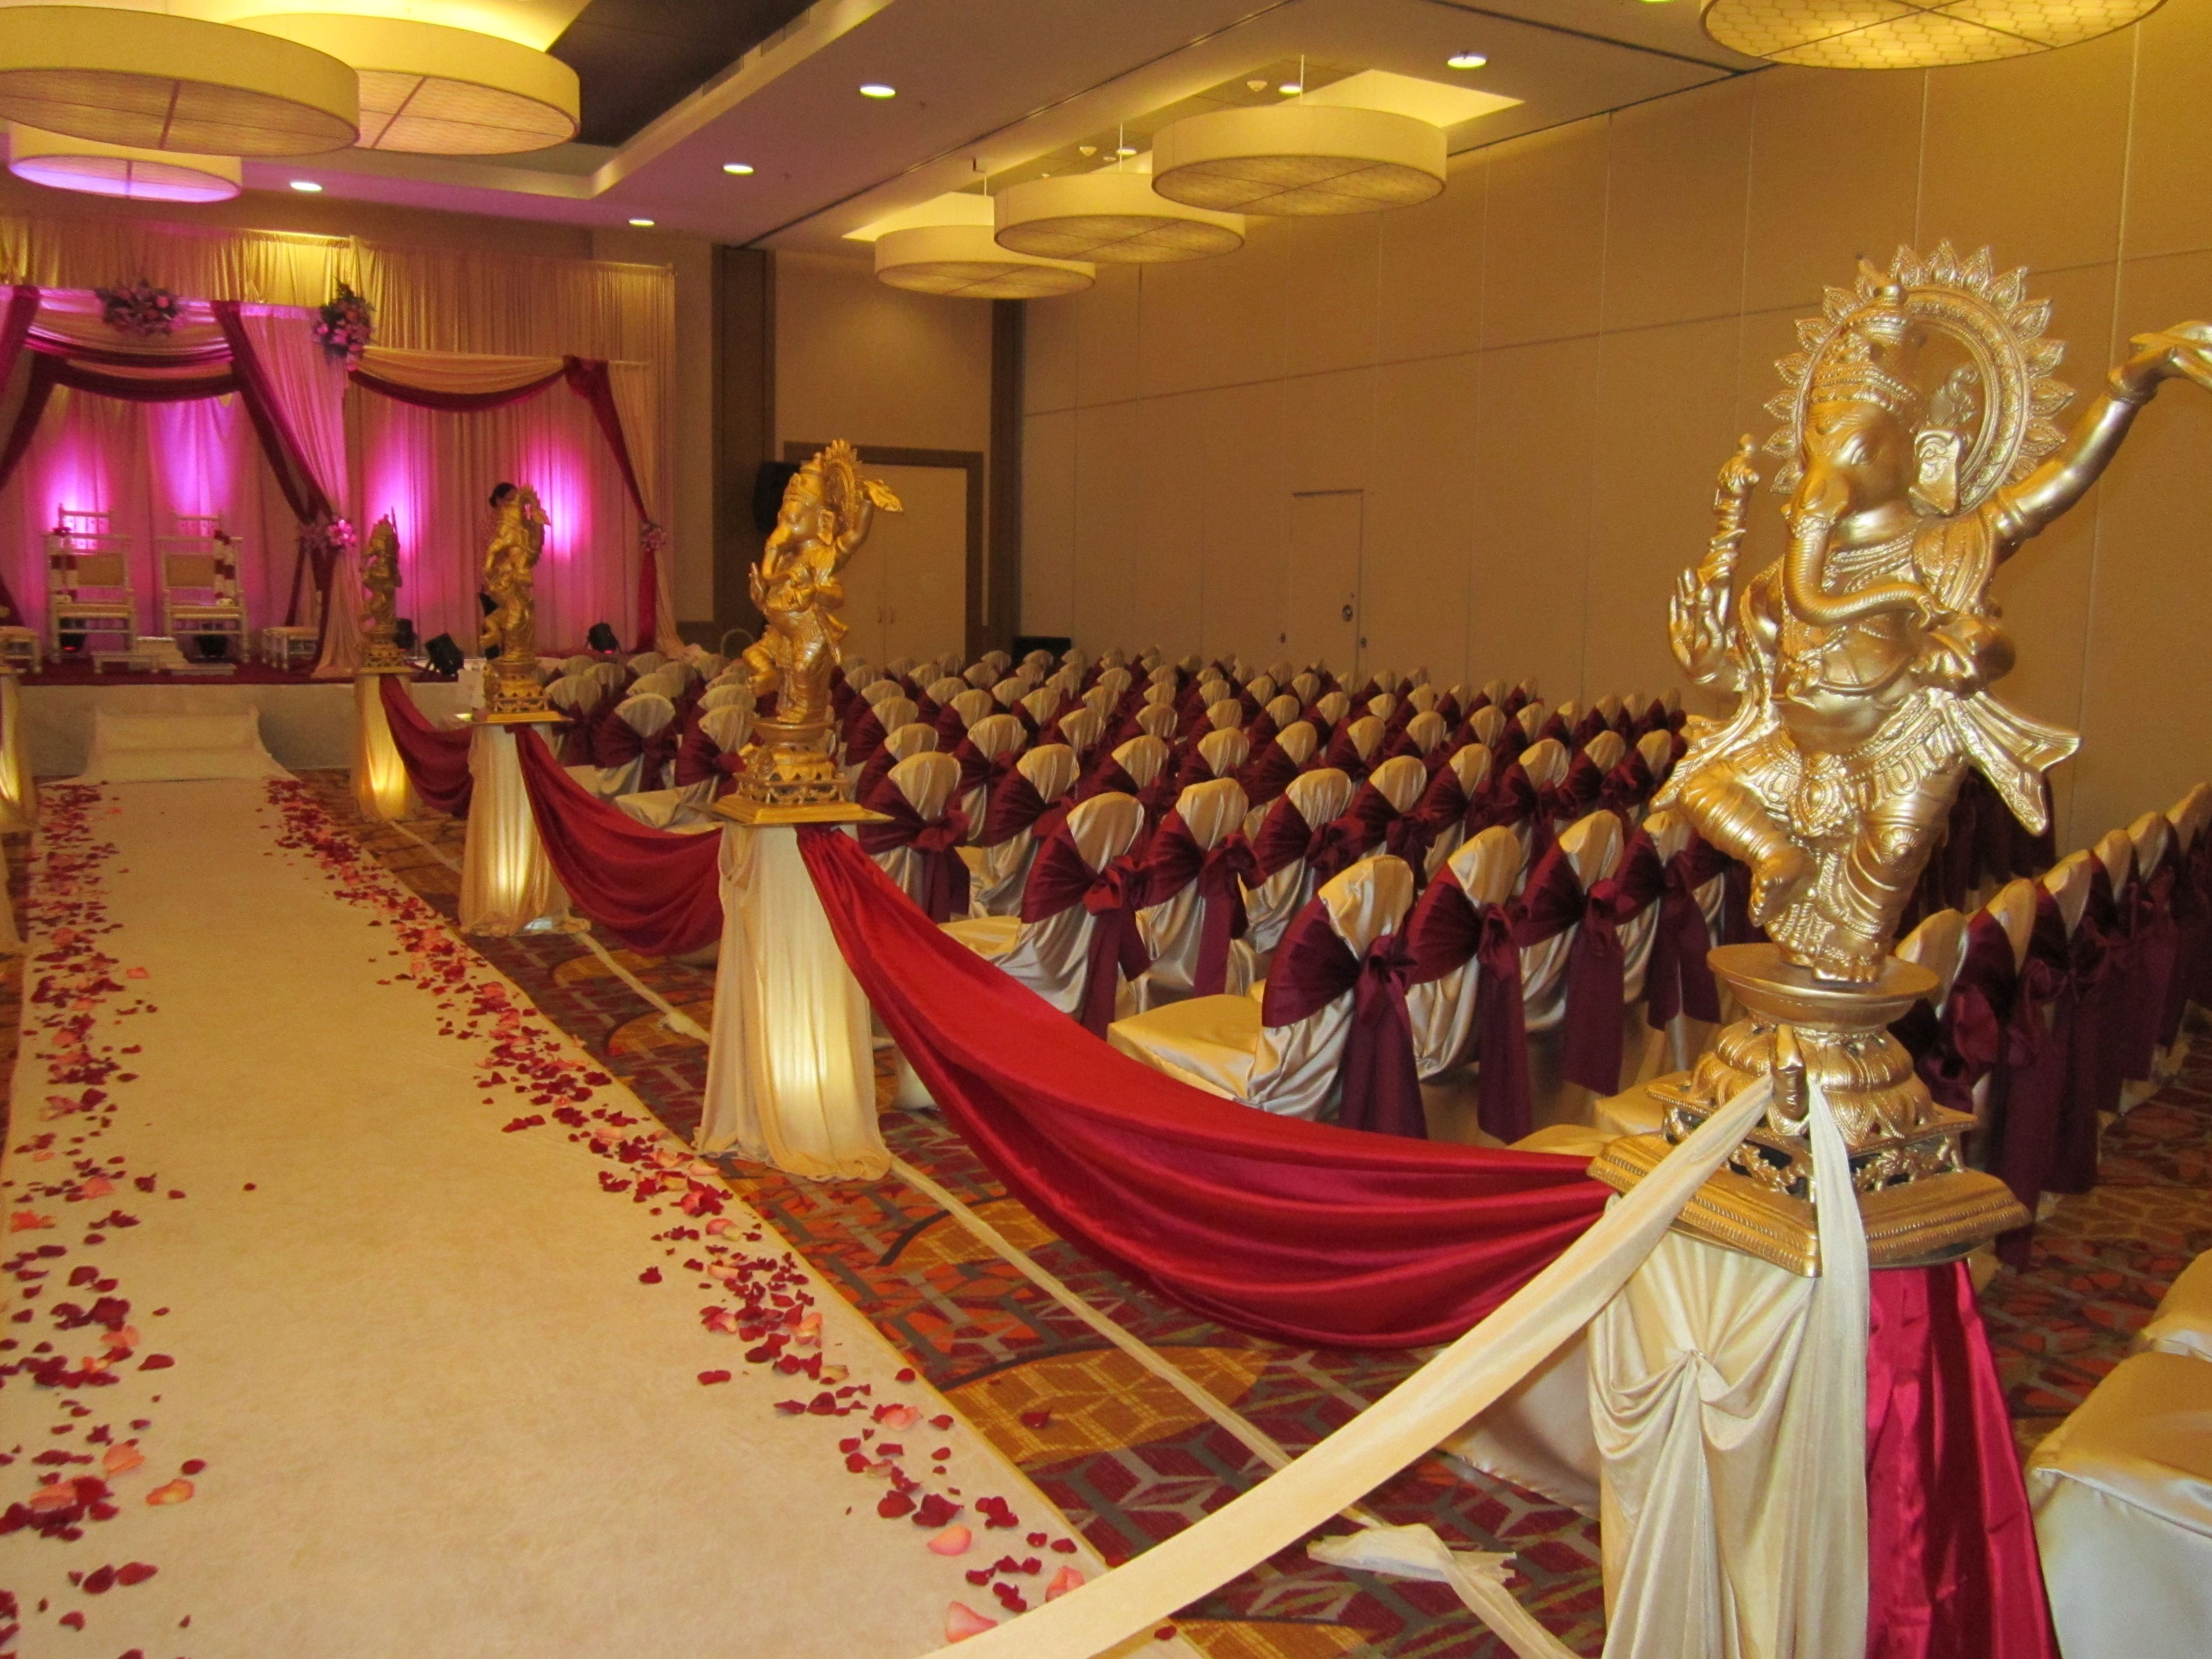 traditional hindu indian wedding ceremony set up - statues of